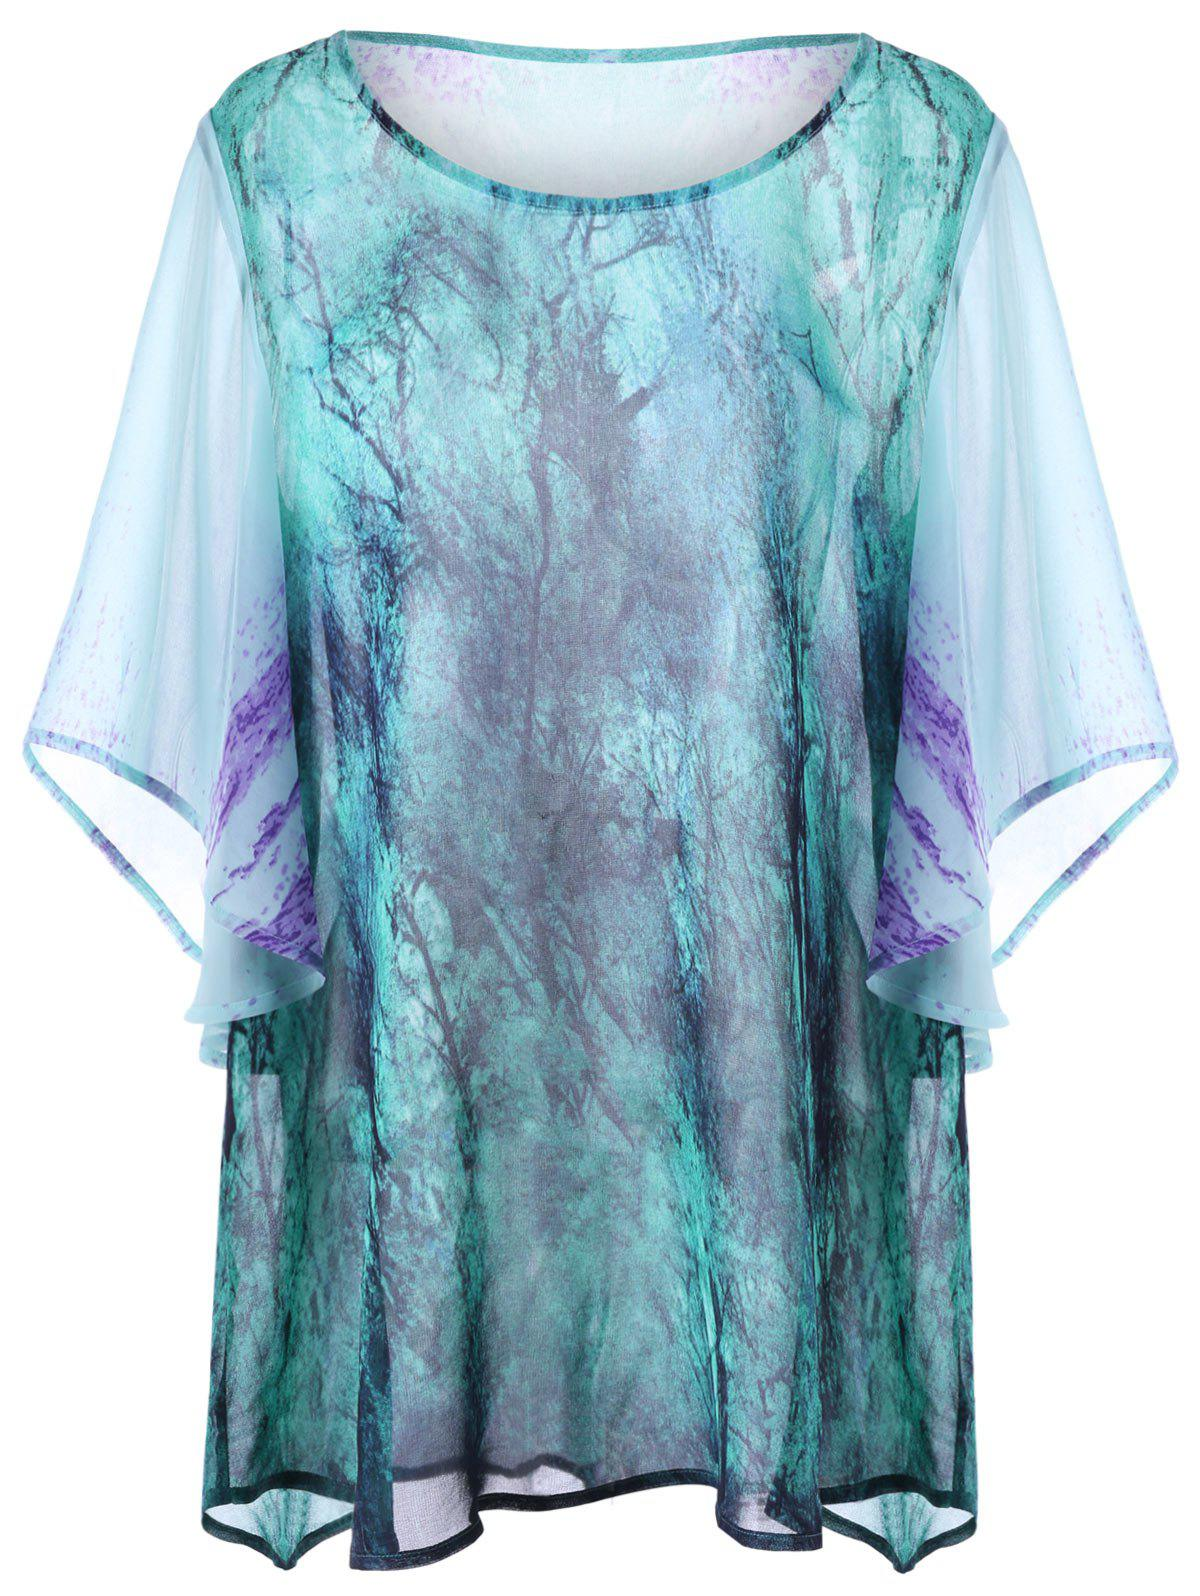 Tie Dye Print Plus Size Top - COLORMIX 4XL